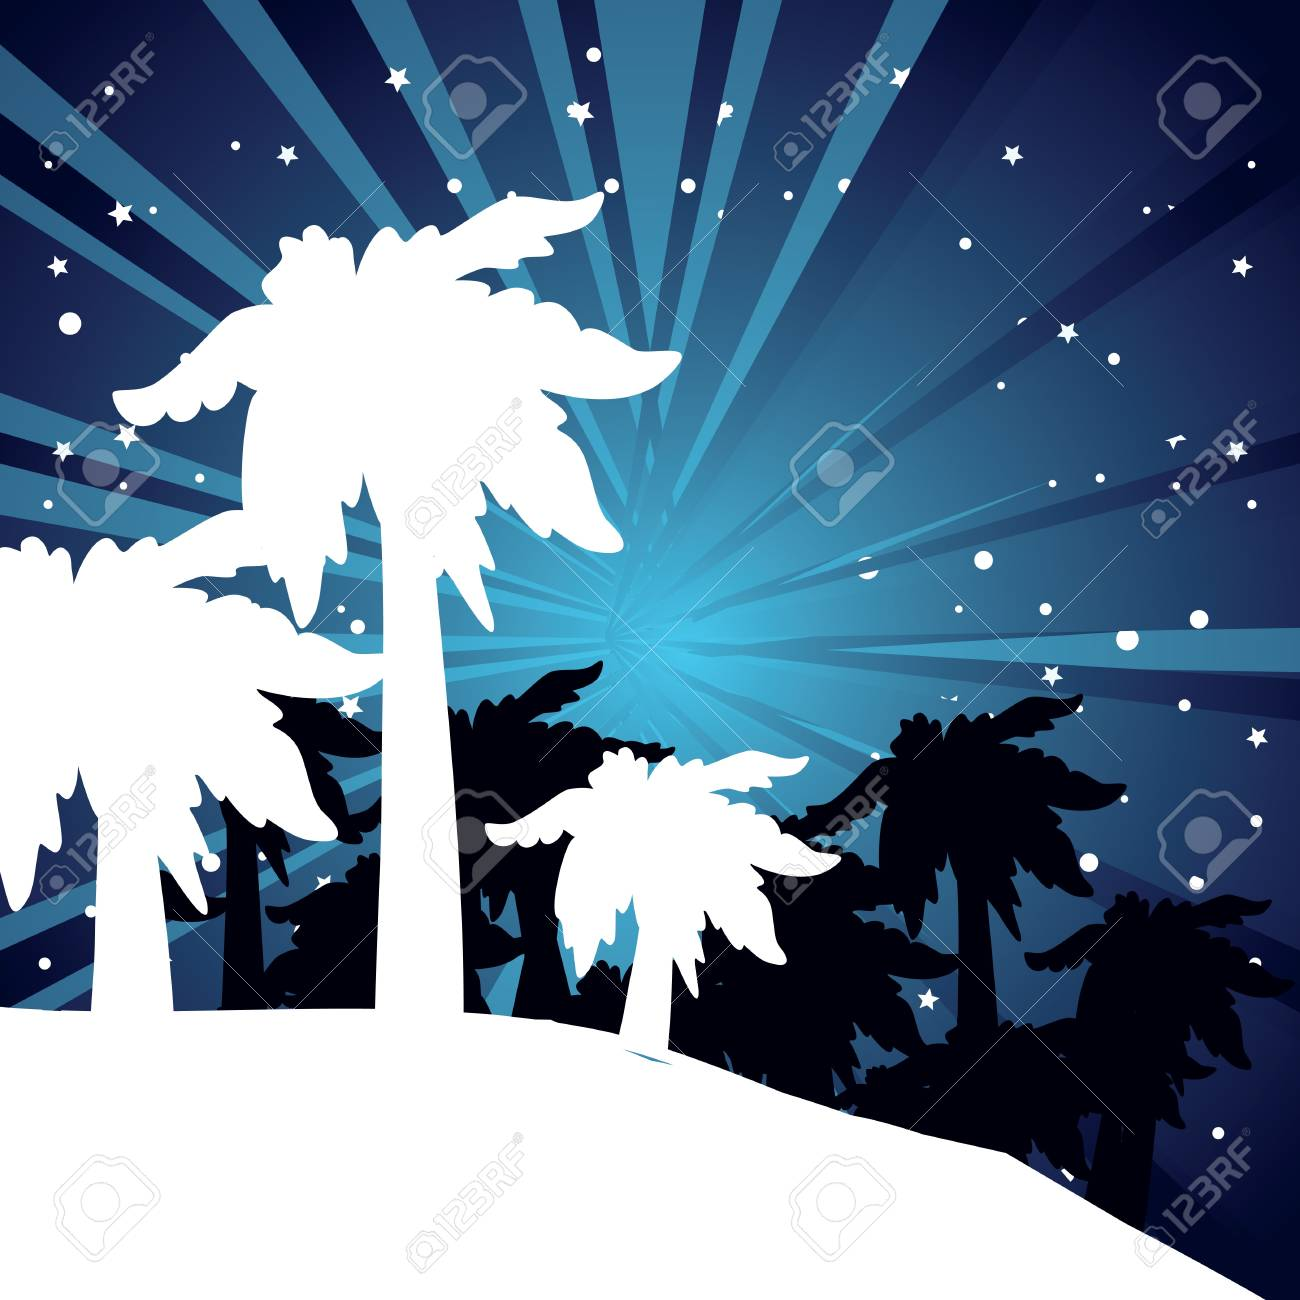 summer night with palm trees Stock Vector - 16595656